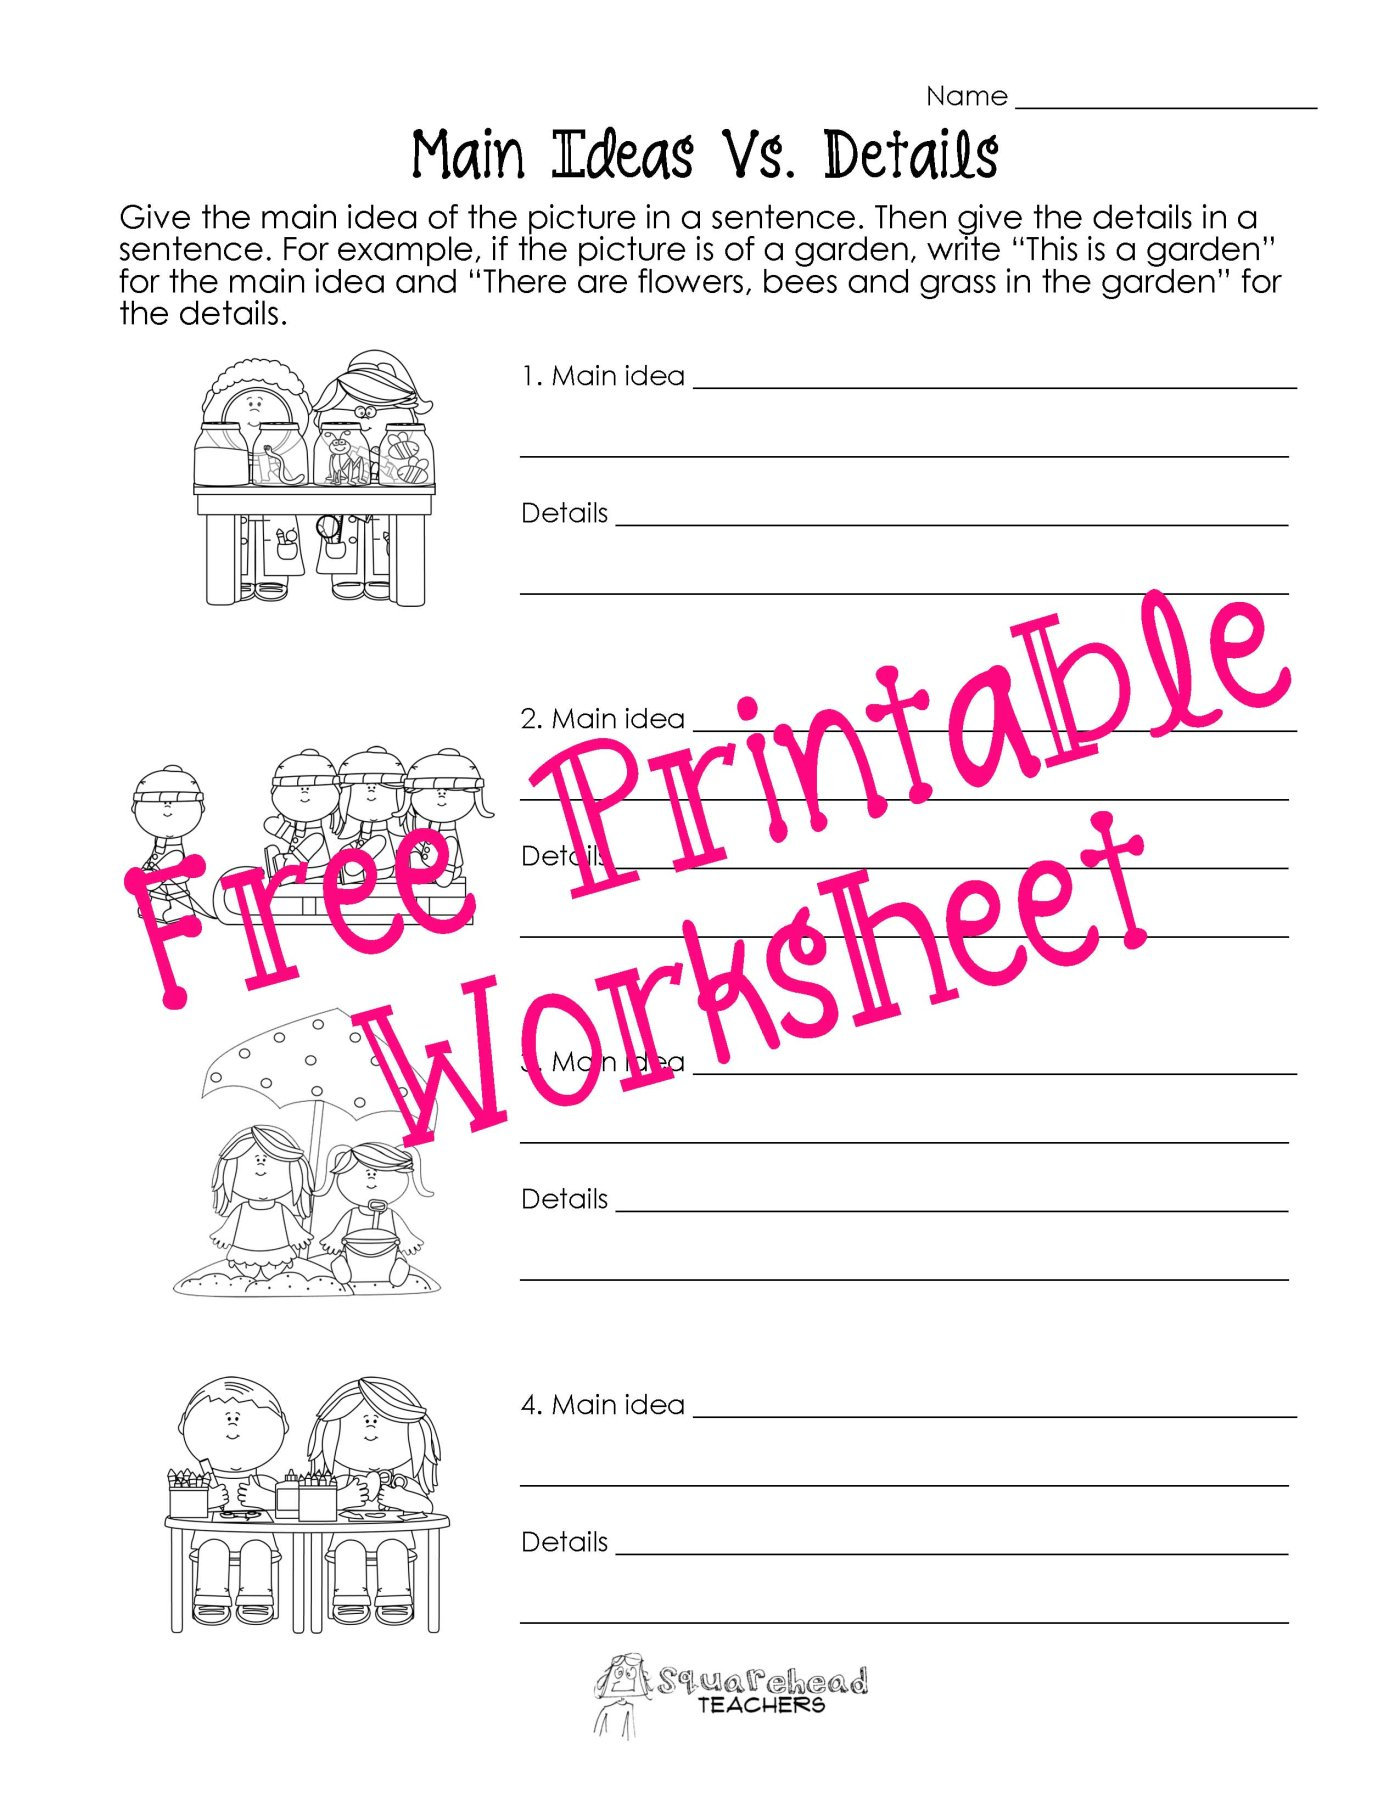 worksheet Free Main Idea Worksheets main idea vs details worksheets squarehead teachers